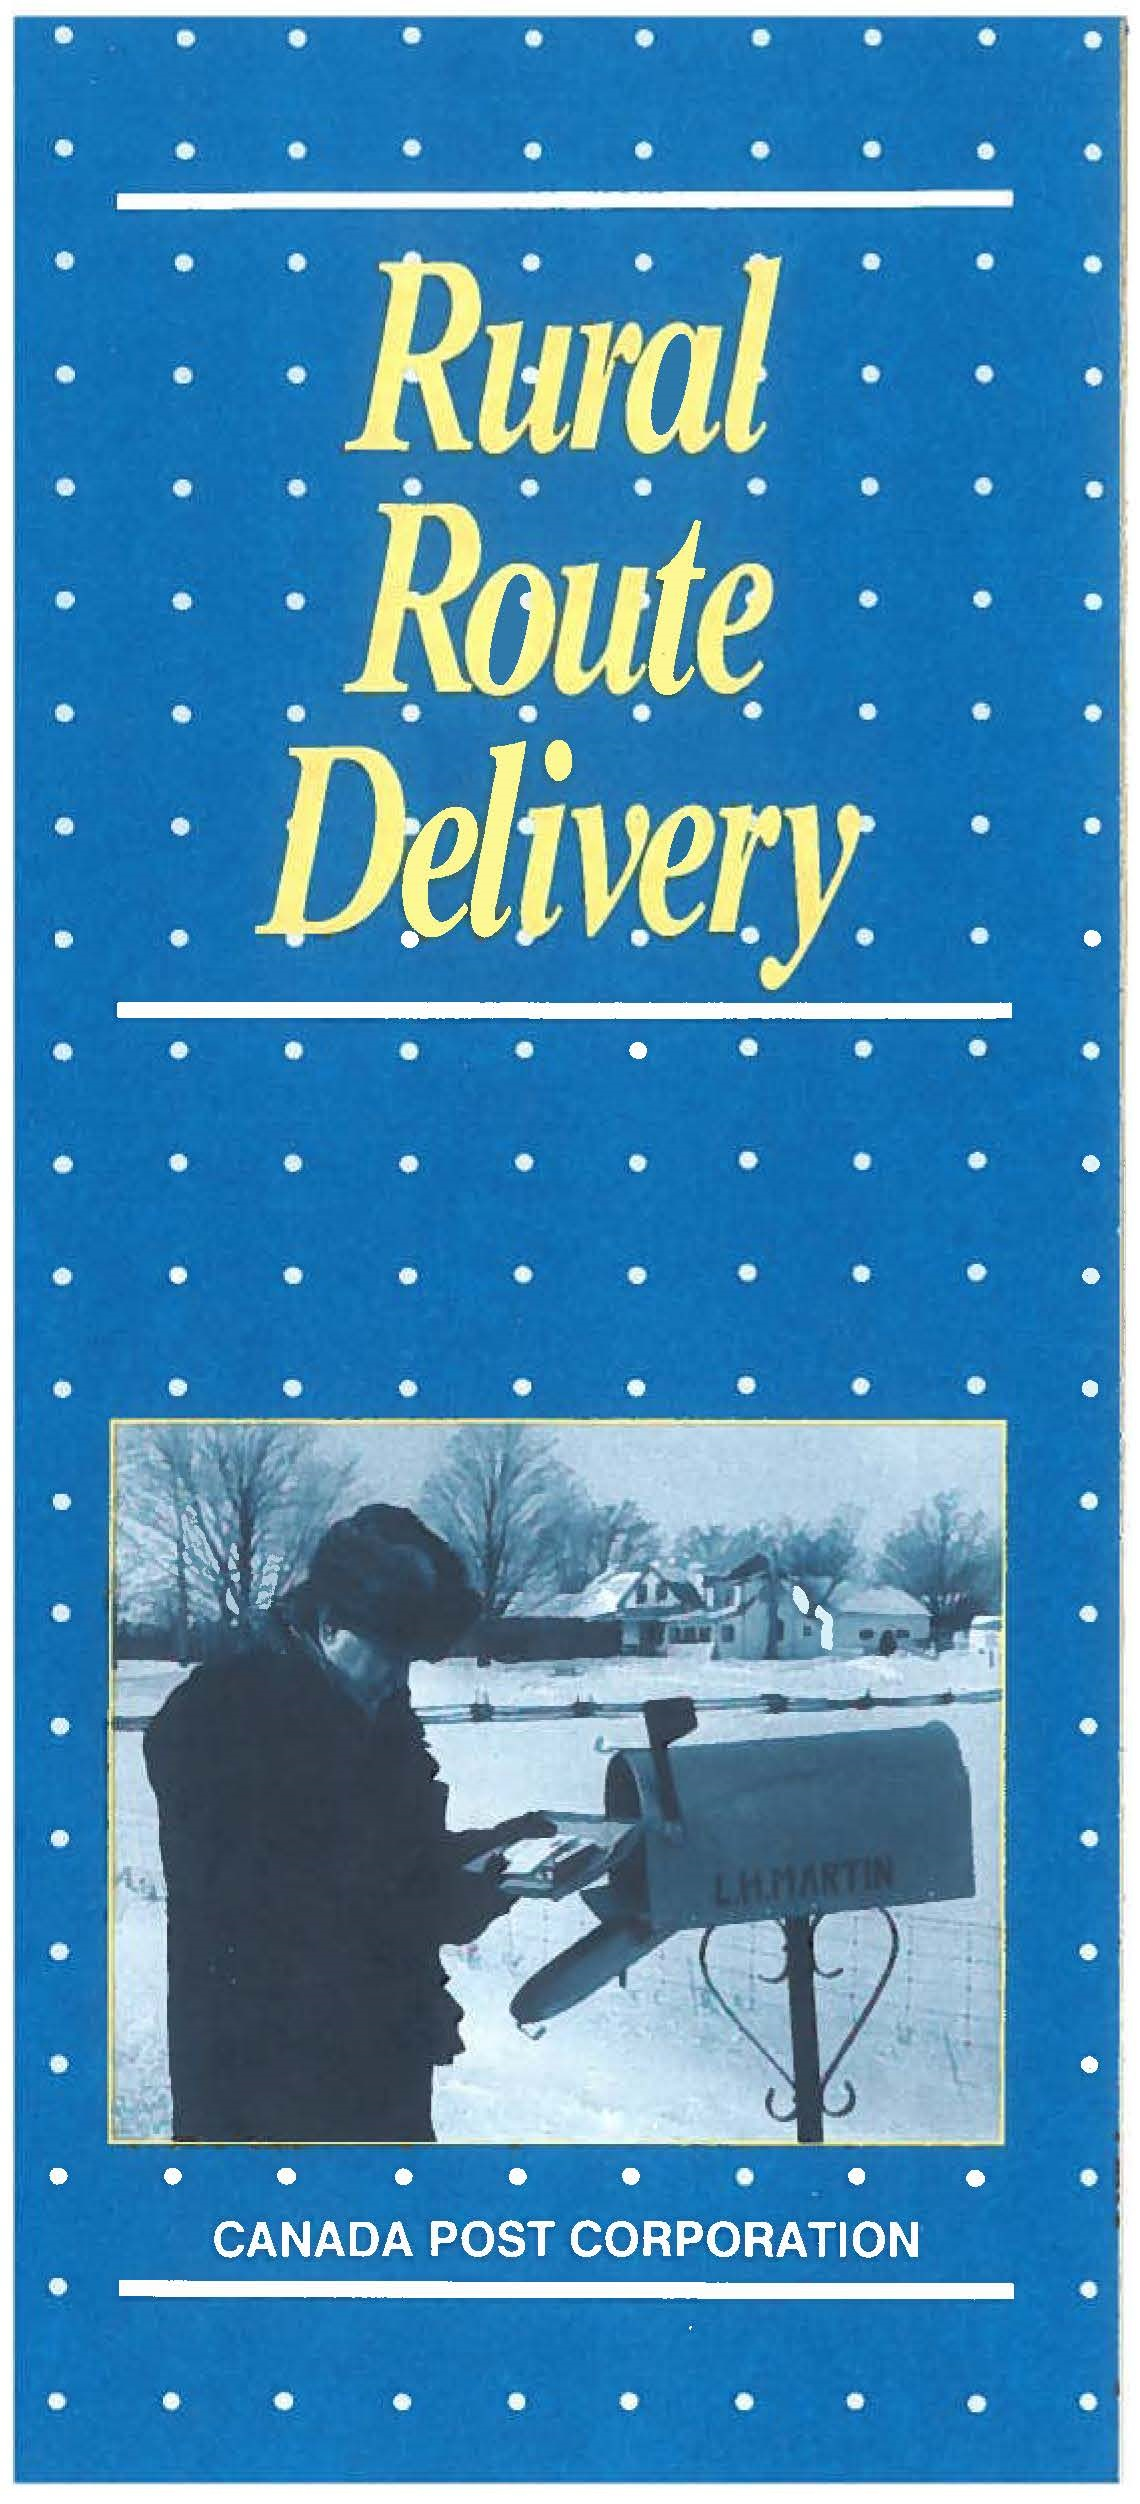 cover of the Rural route delivery pamphlet from Canada post